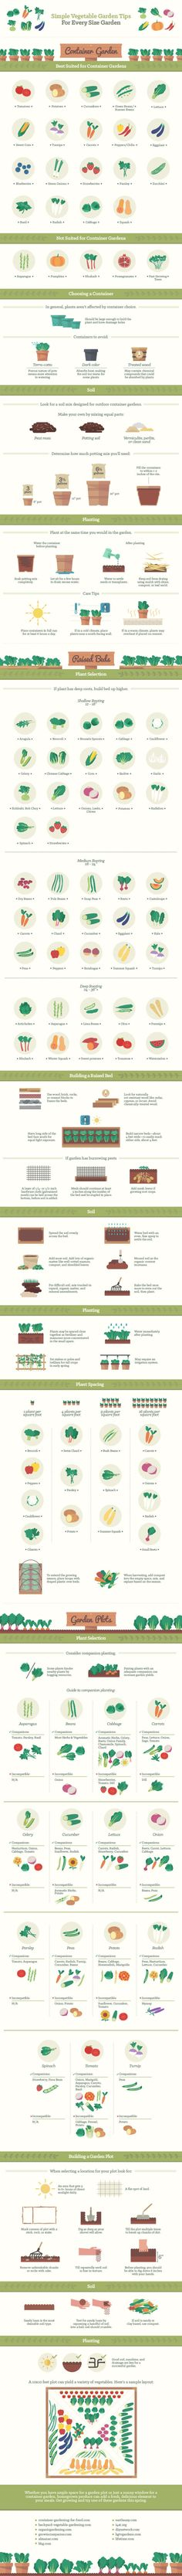 Today's infographic is really the best guide for growing veggies out there. Follow this advice and you will be cookin' up your own in no time.